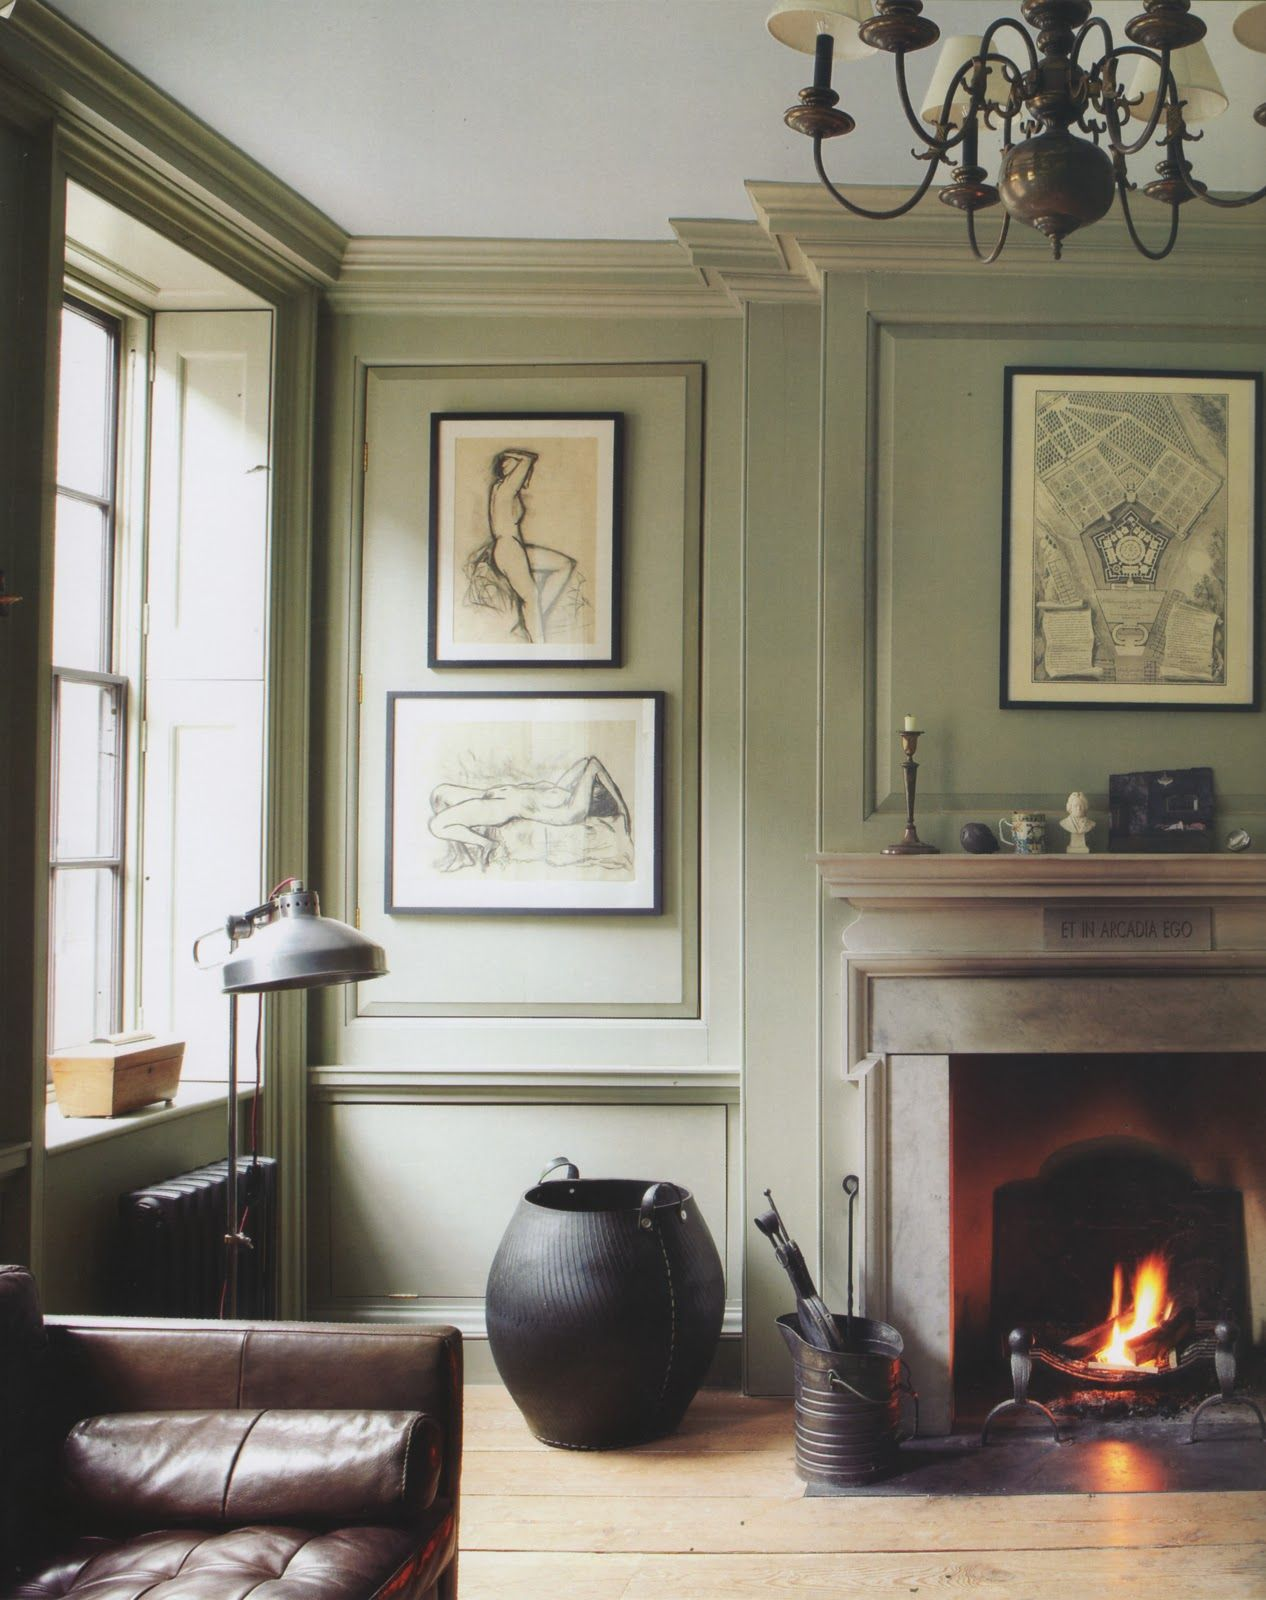 Study farrow ball french gray rooms farrow ball - Farrow and ball decoration ...